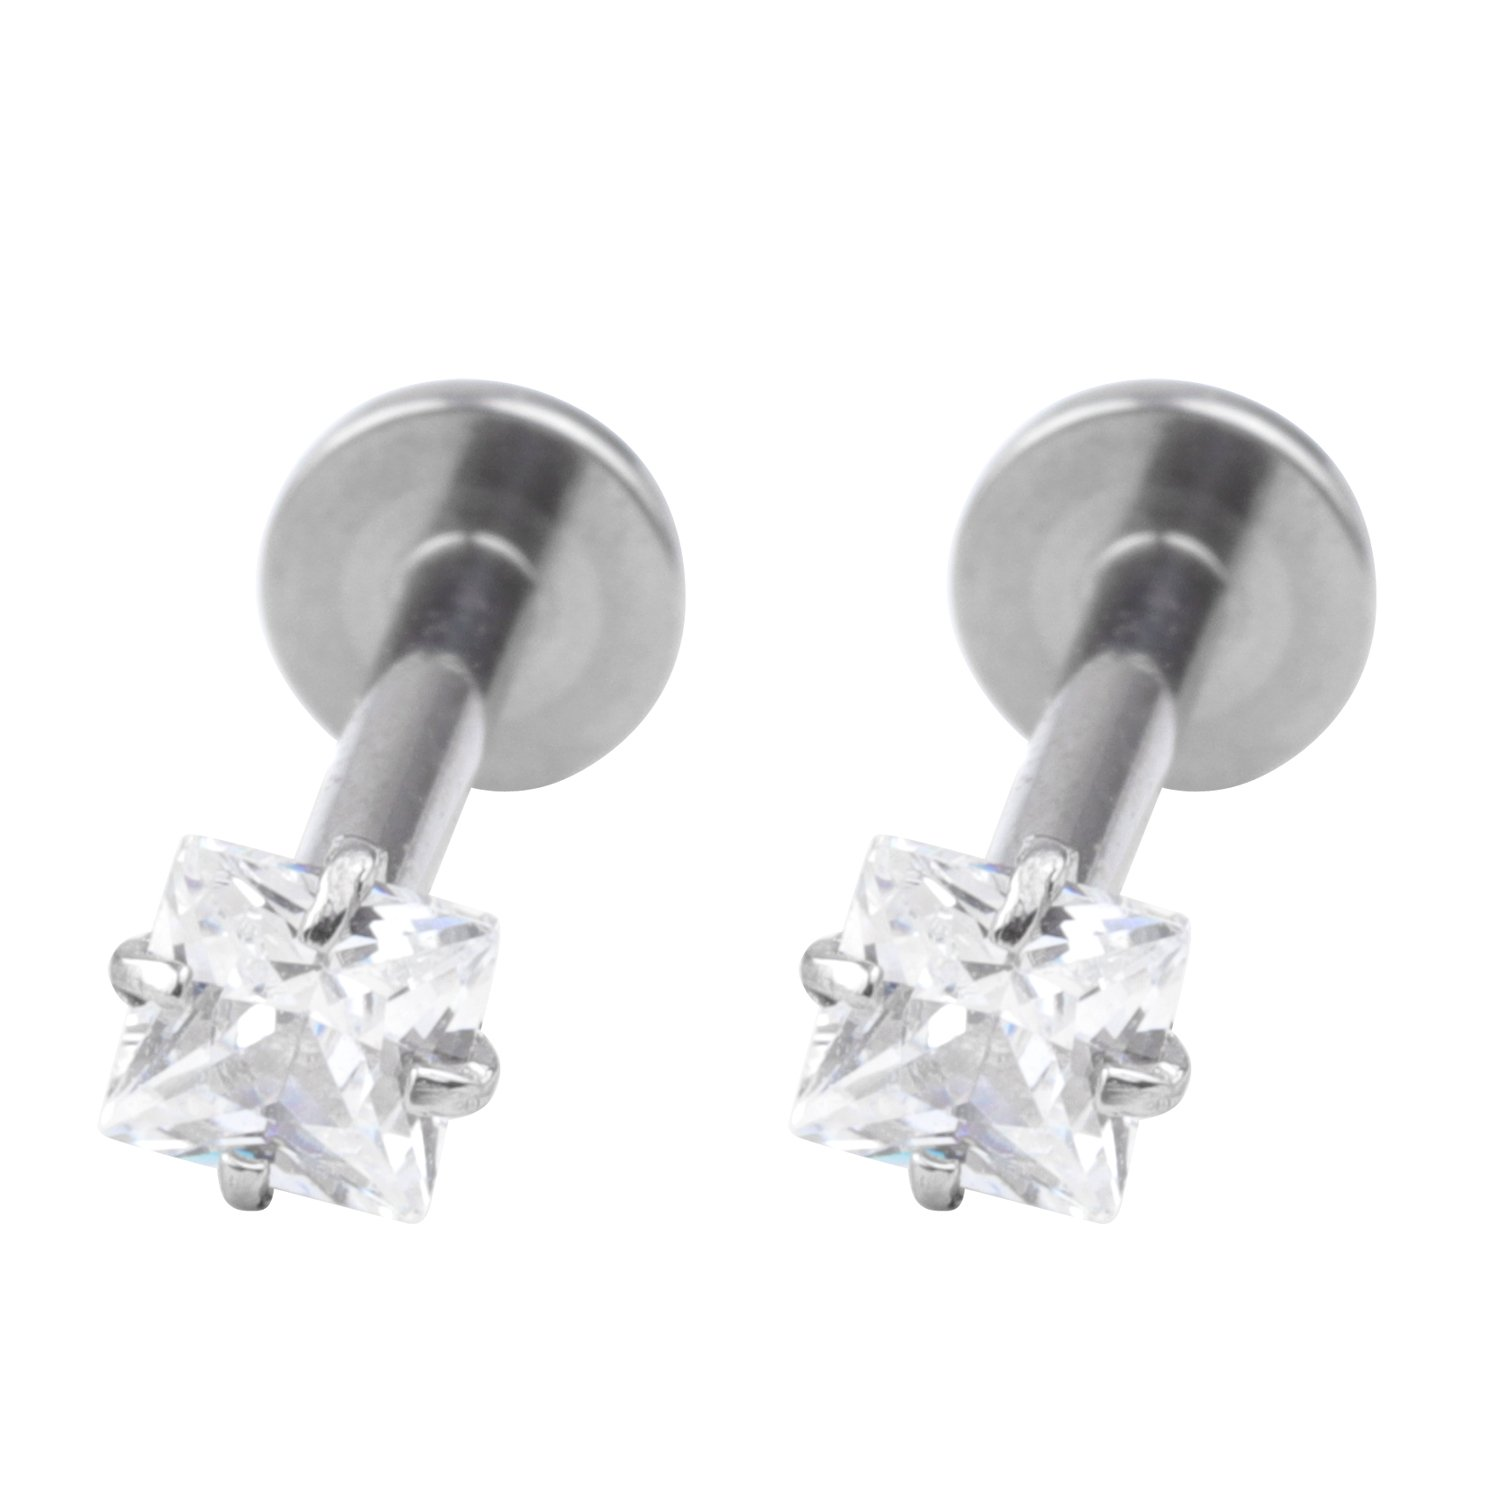 16G 2pcs Surgical Steel 3mm Square Clear Cubic Zirconia Labret Monroe Lip RingTragusHelix Earring